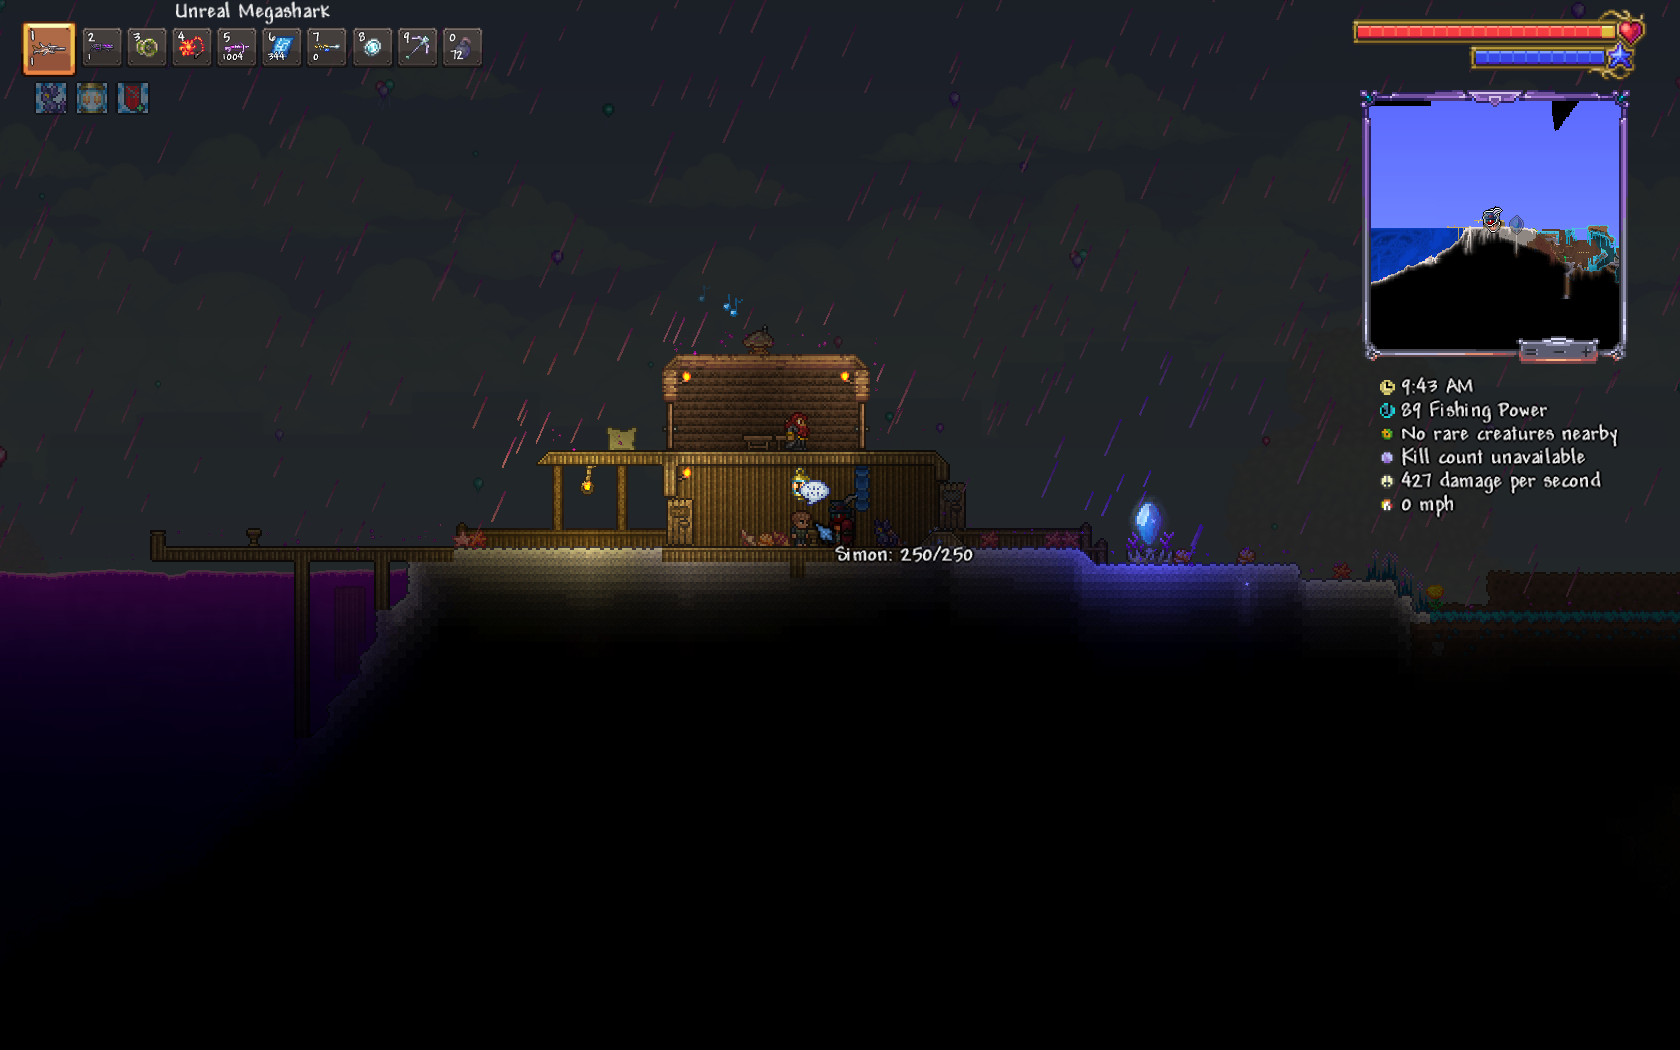 Terraria_ Sand is Overpowered 9_15_2021 2_44_32 PM.png